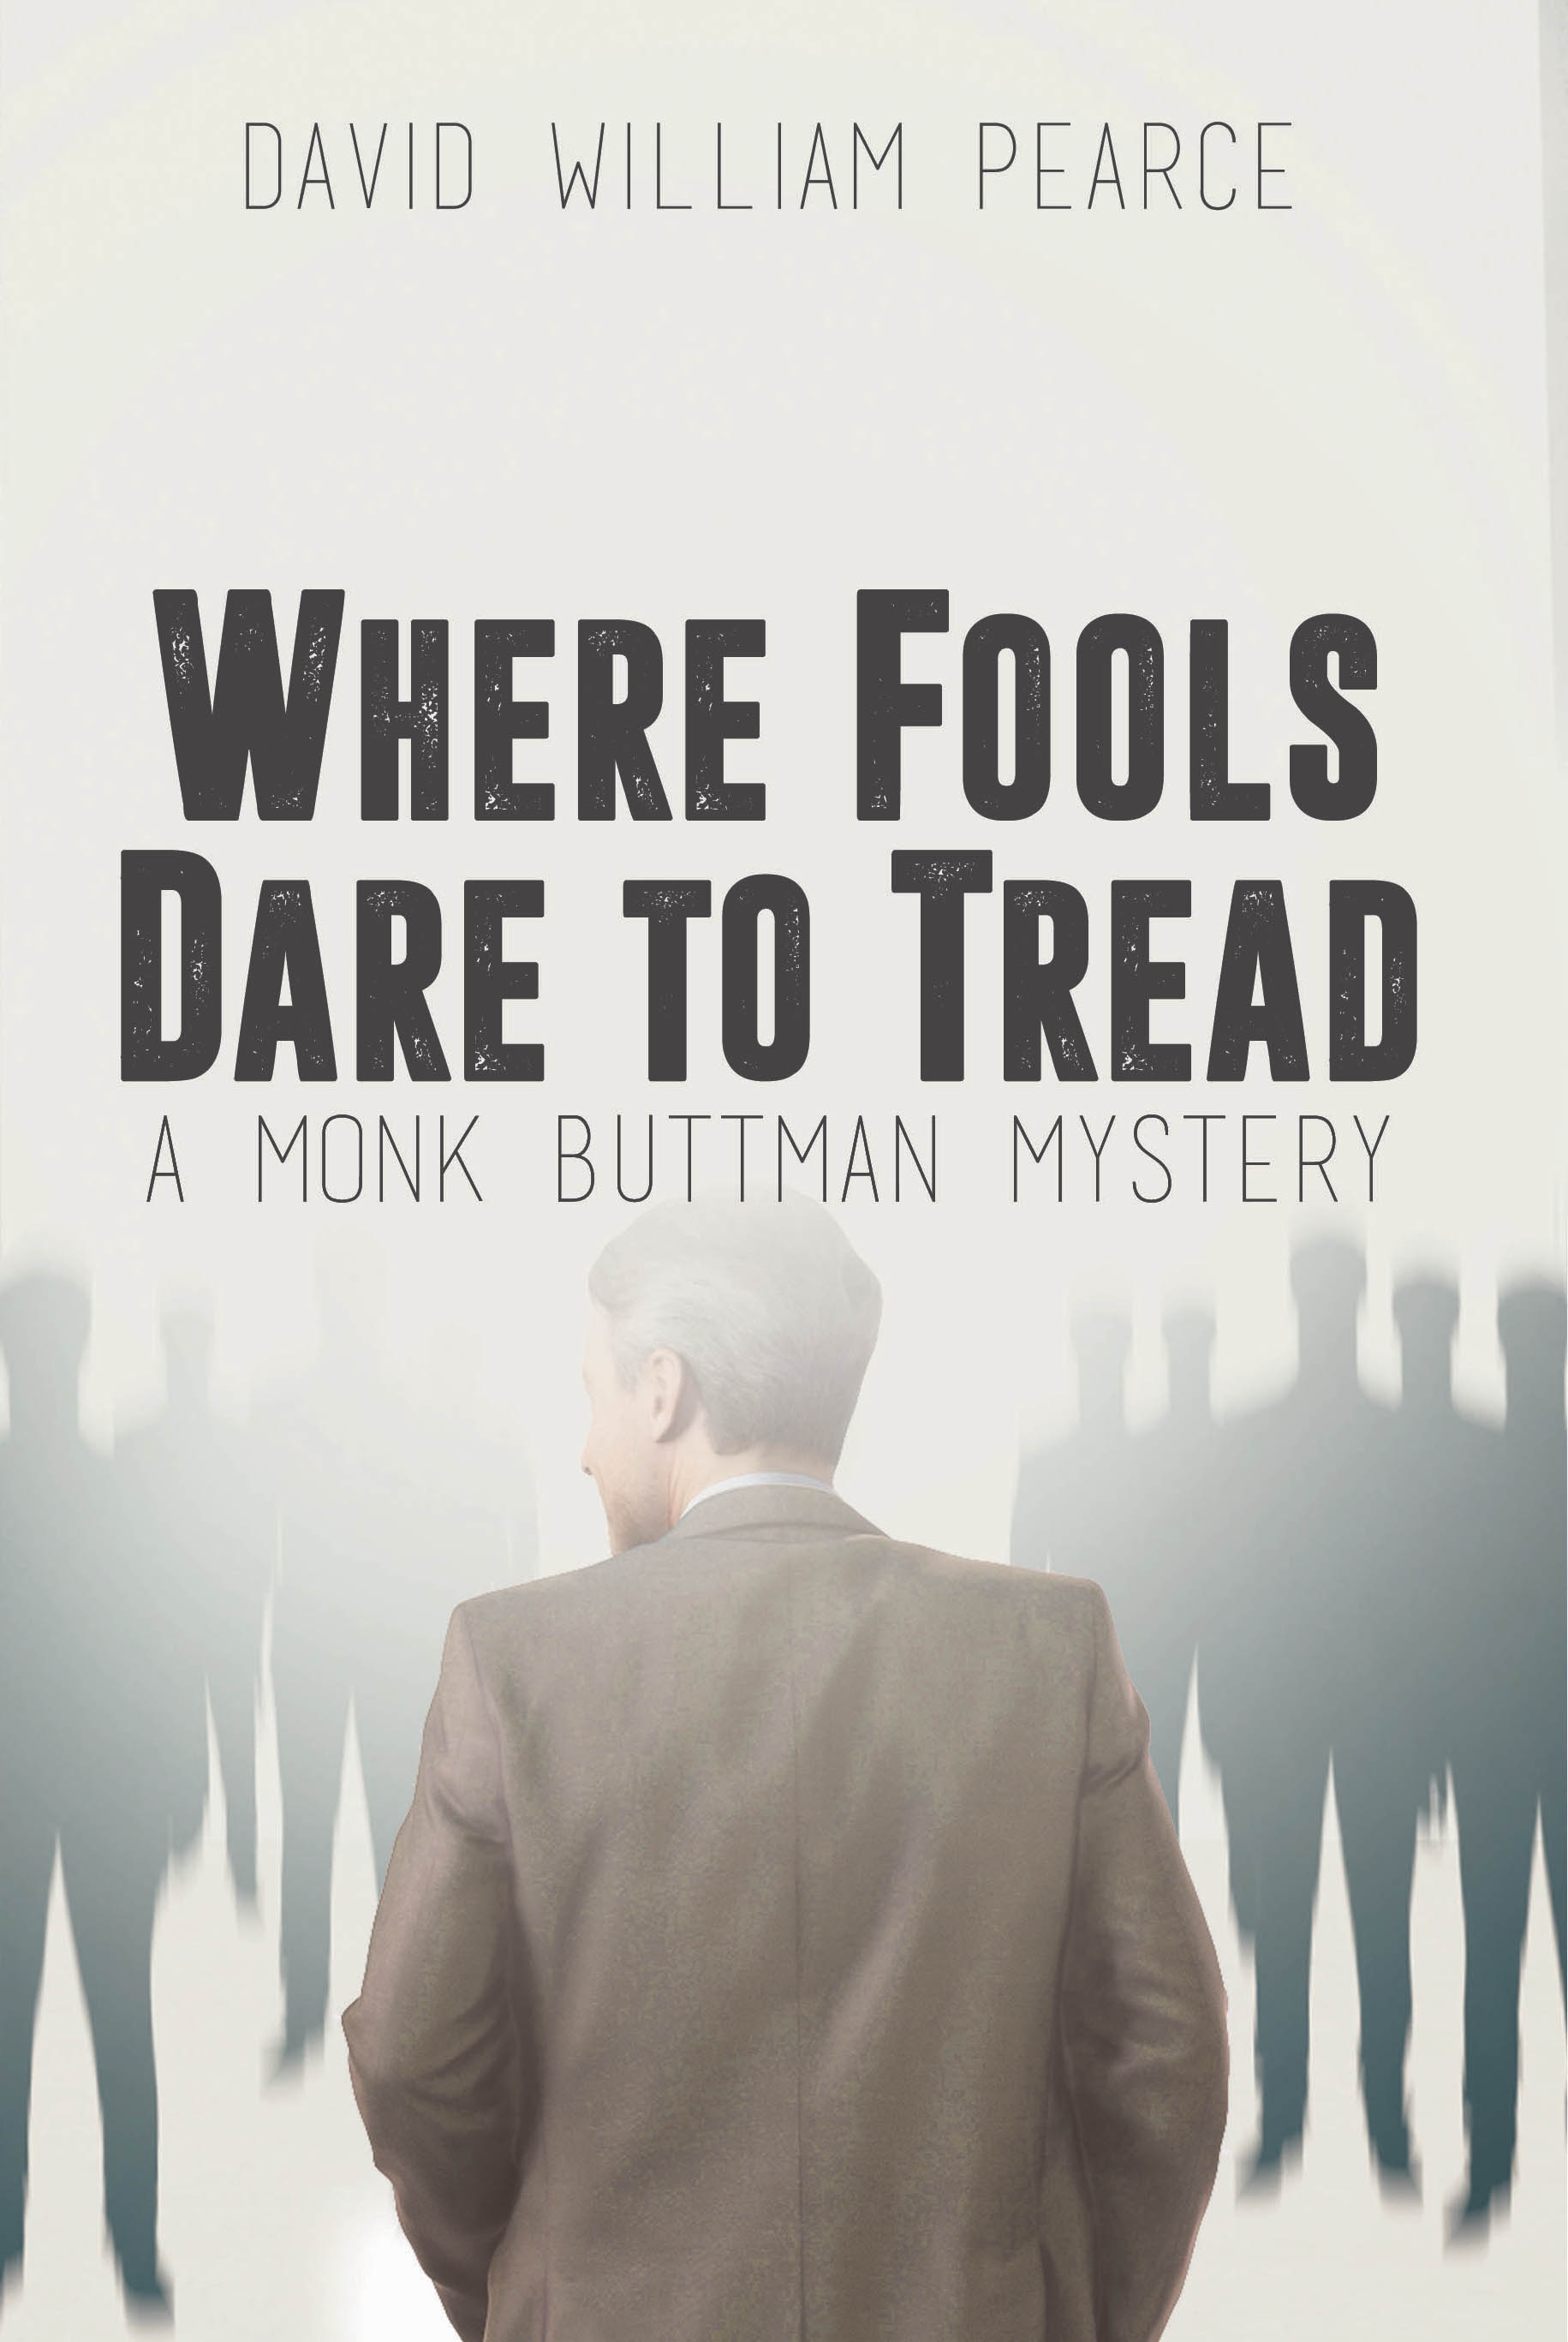 Where Fools Dare to Tread full front cover